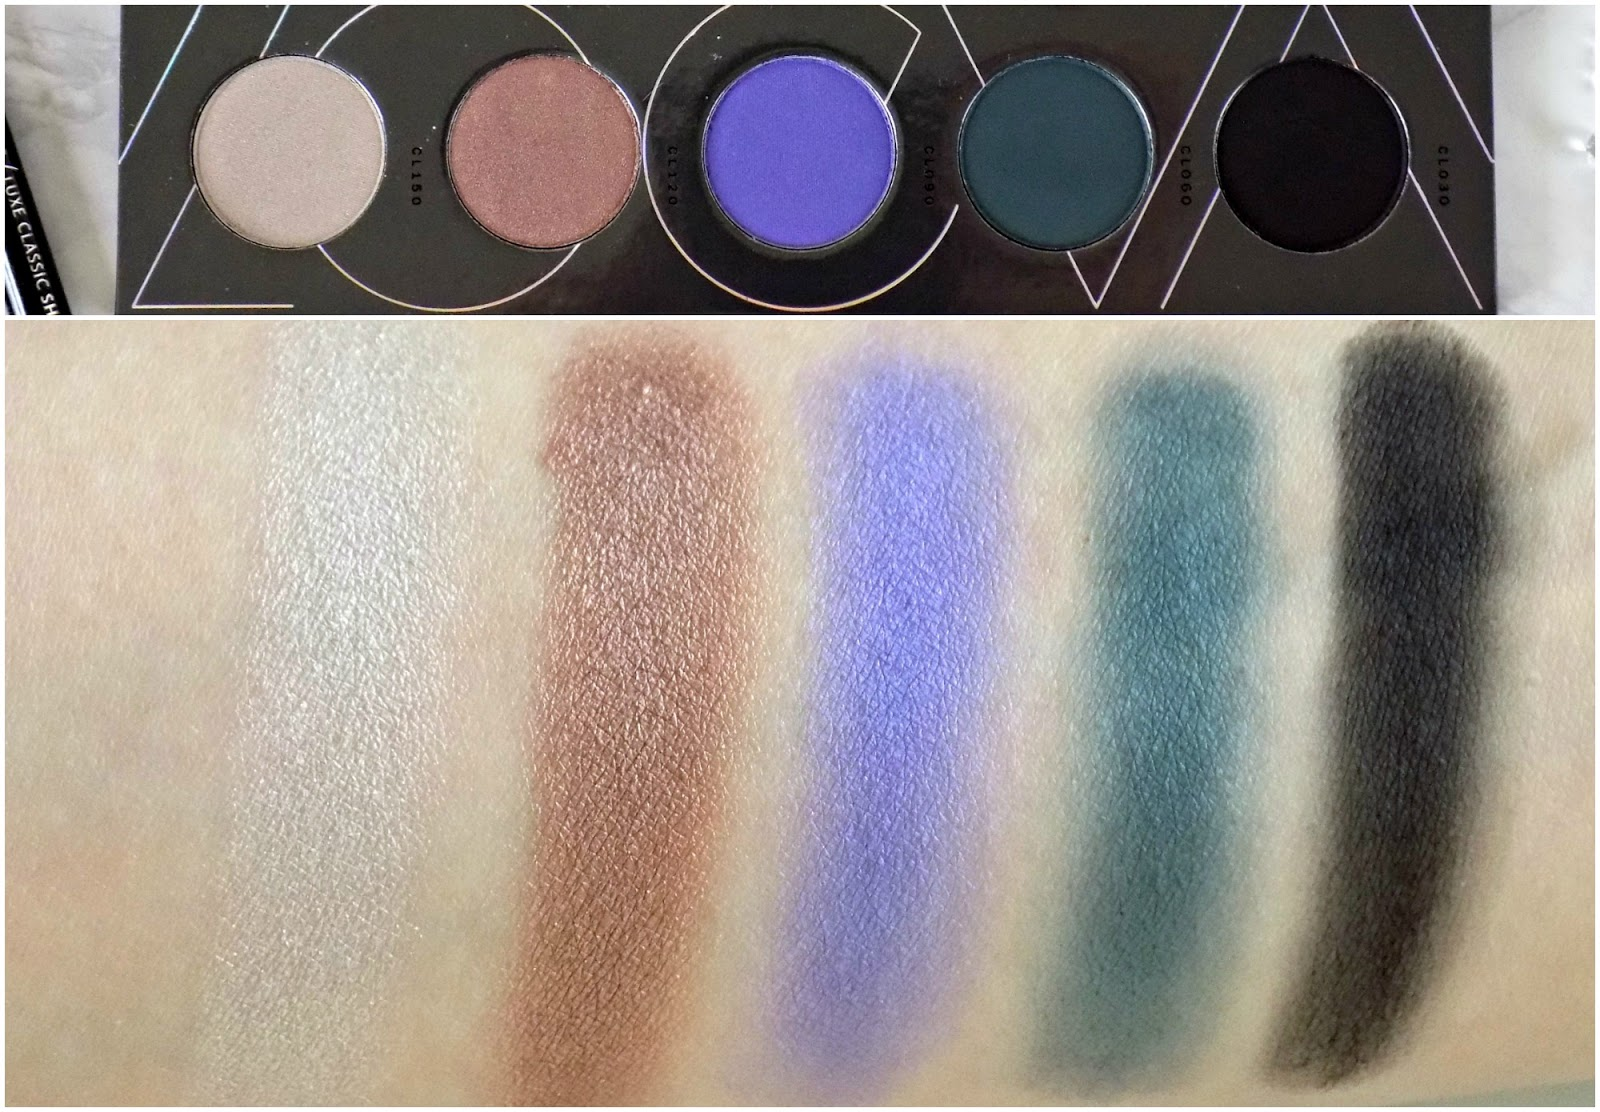 Zoeva Cool Spectrum eyeshadow palette swatches